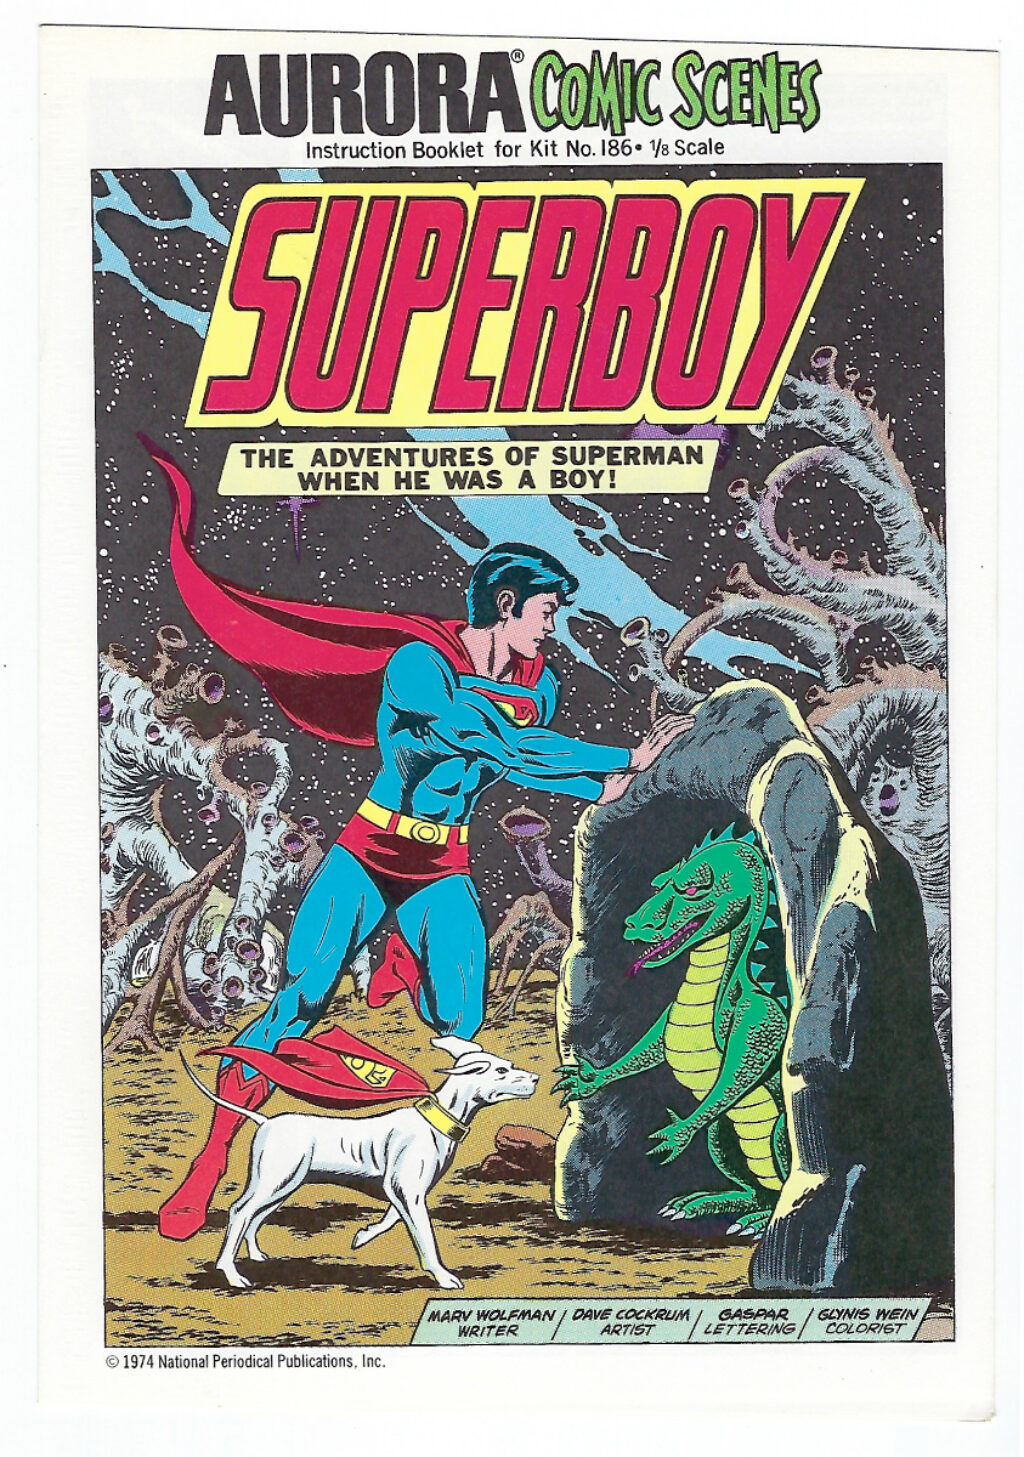 Aurora Comic Scenes Superboy Model Kit Comic Book & Instructions Booklet 1